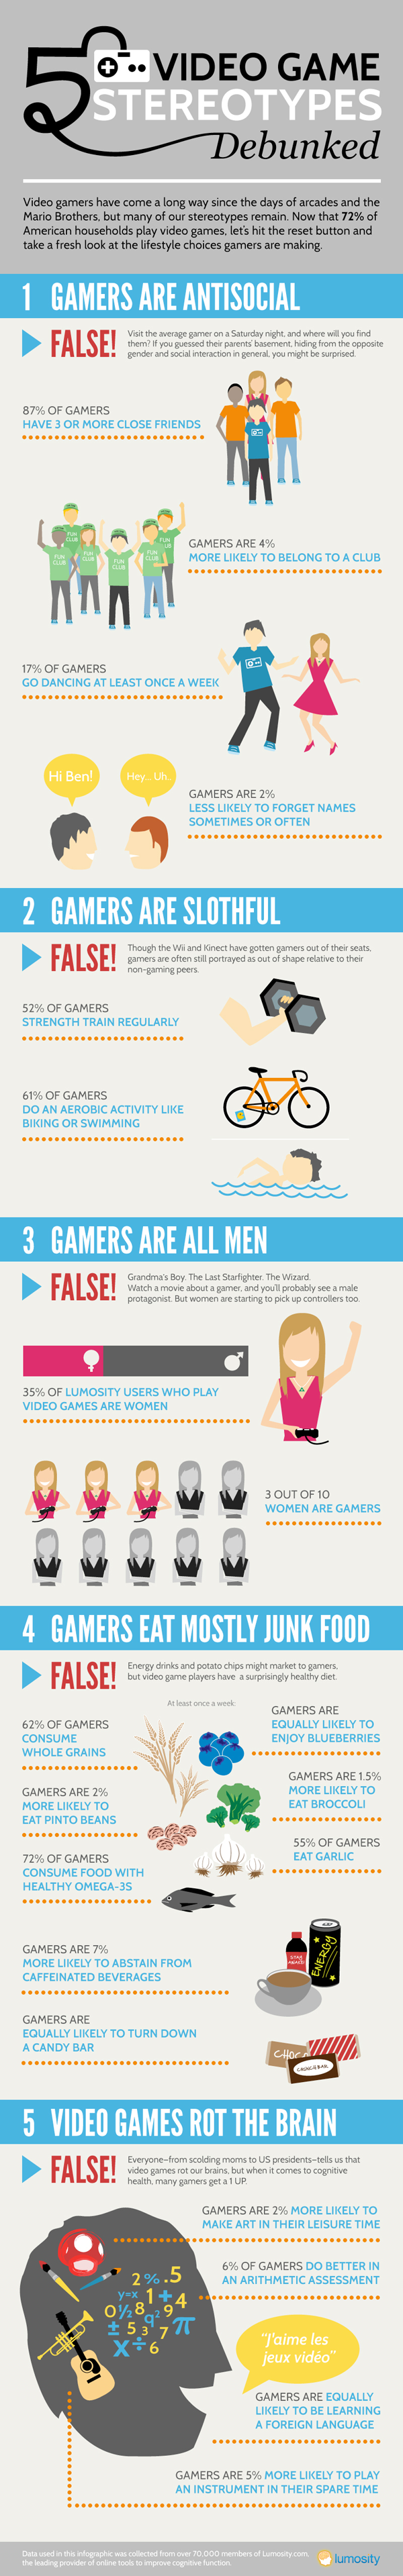 GamerSterotypes_InfoGraphic